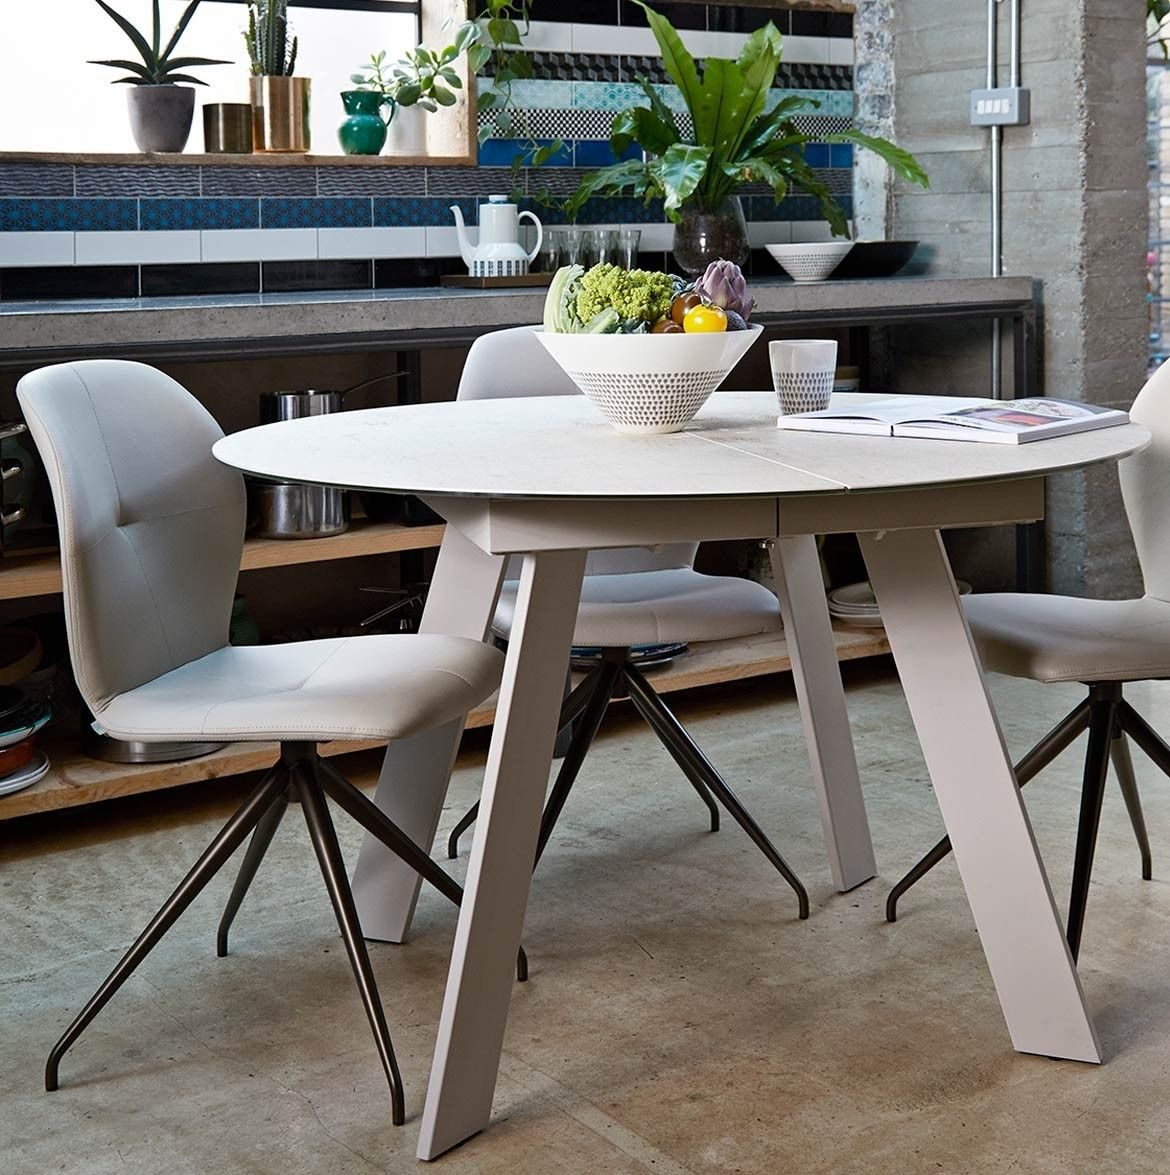 Studio Round Extending Table 120cm Ceramic Ceramic Dining